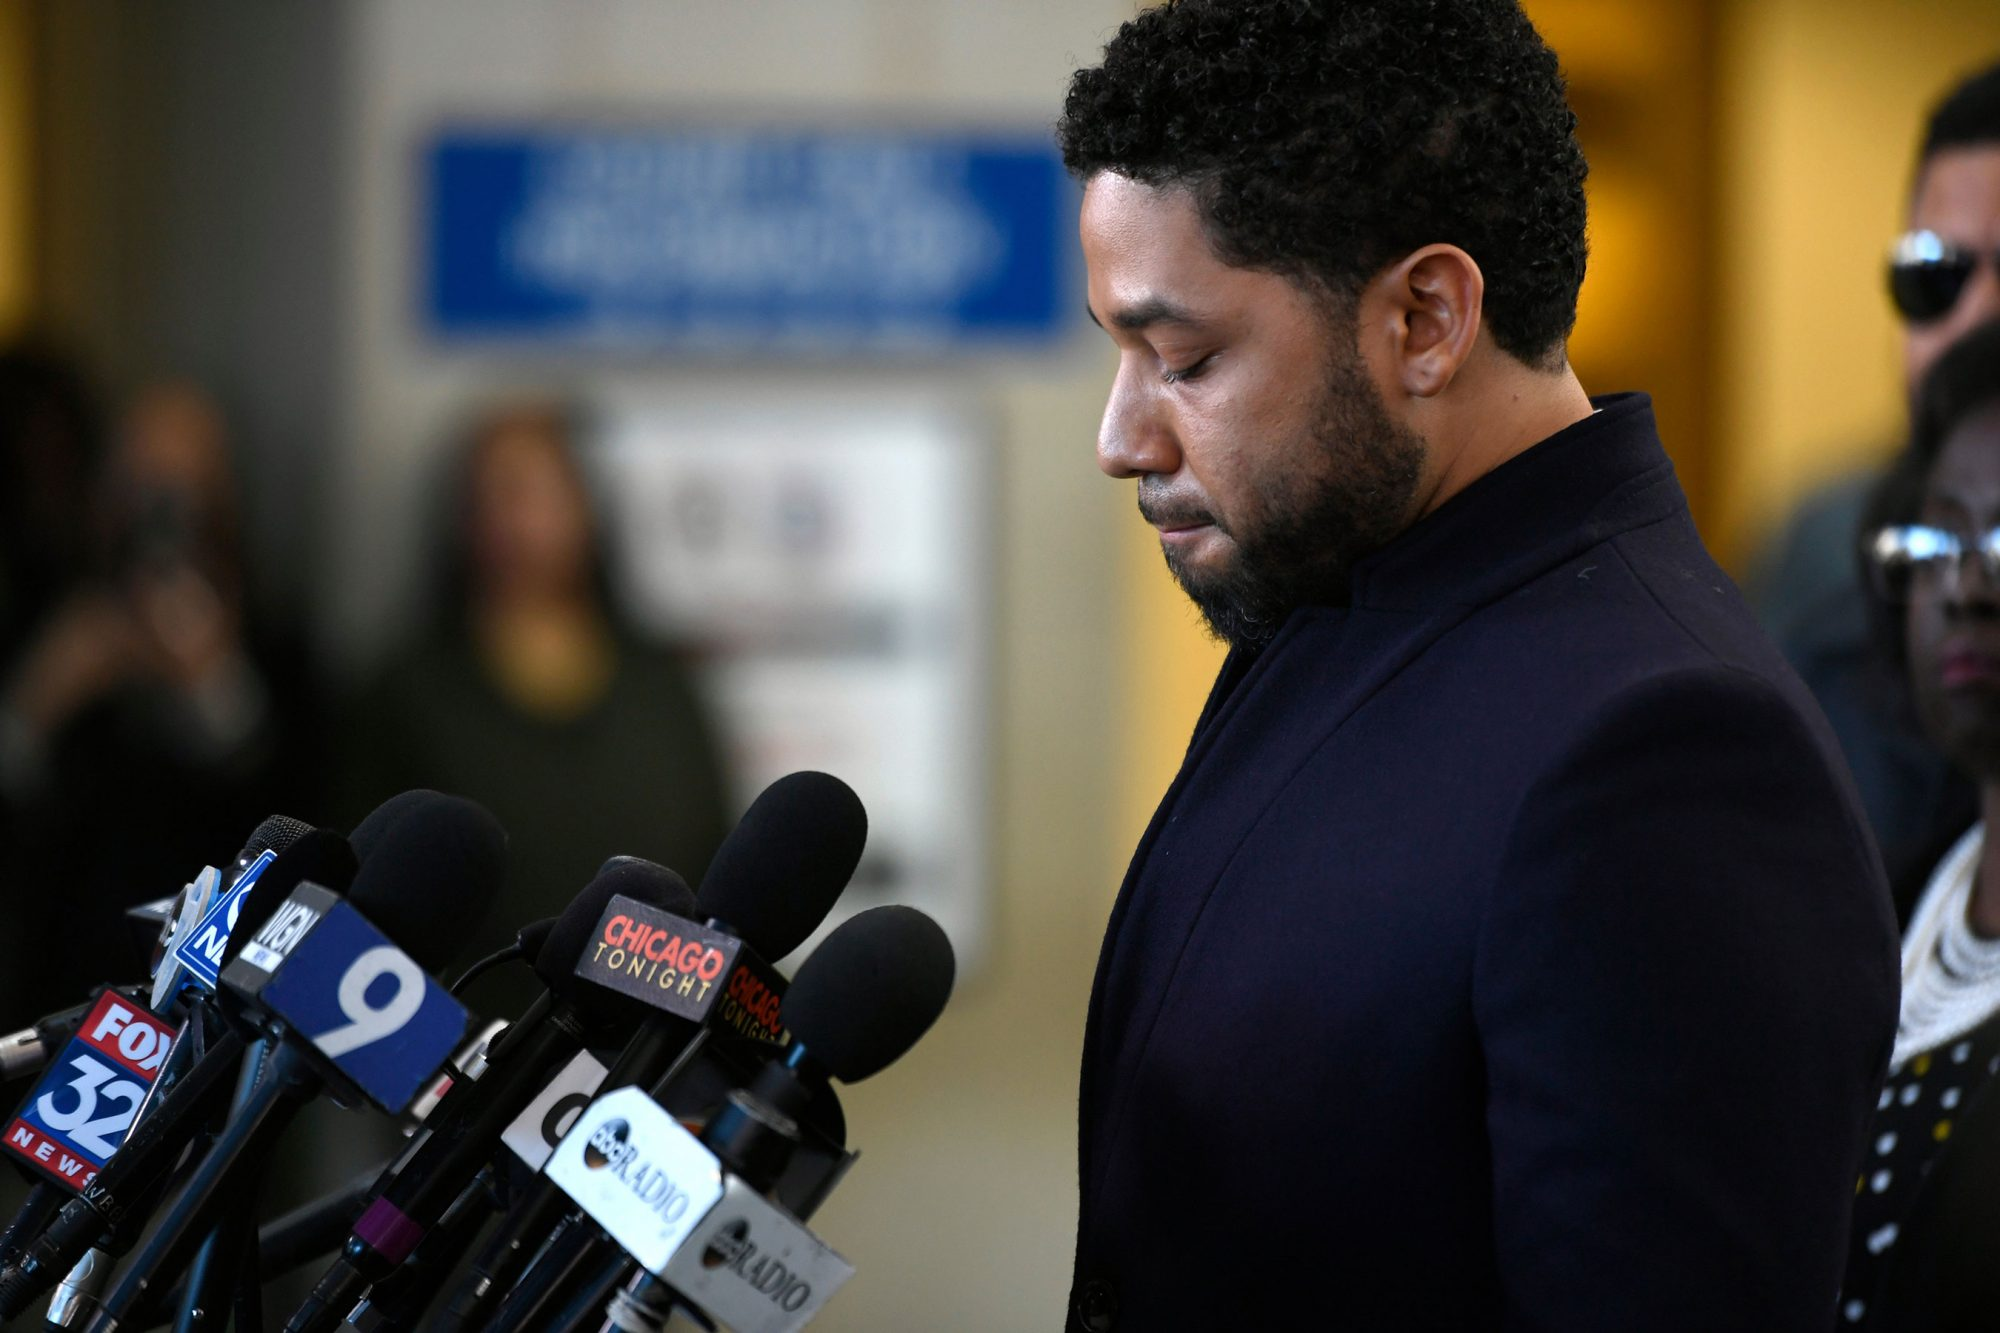 Jussie Smollett, Chicago, USA - 26 Mar 2019